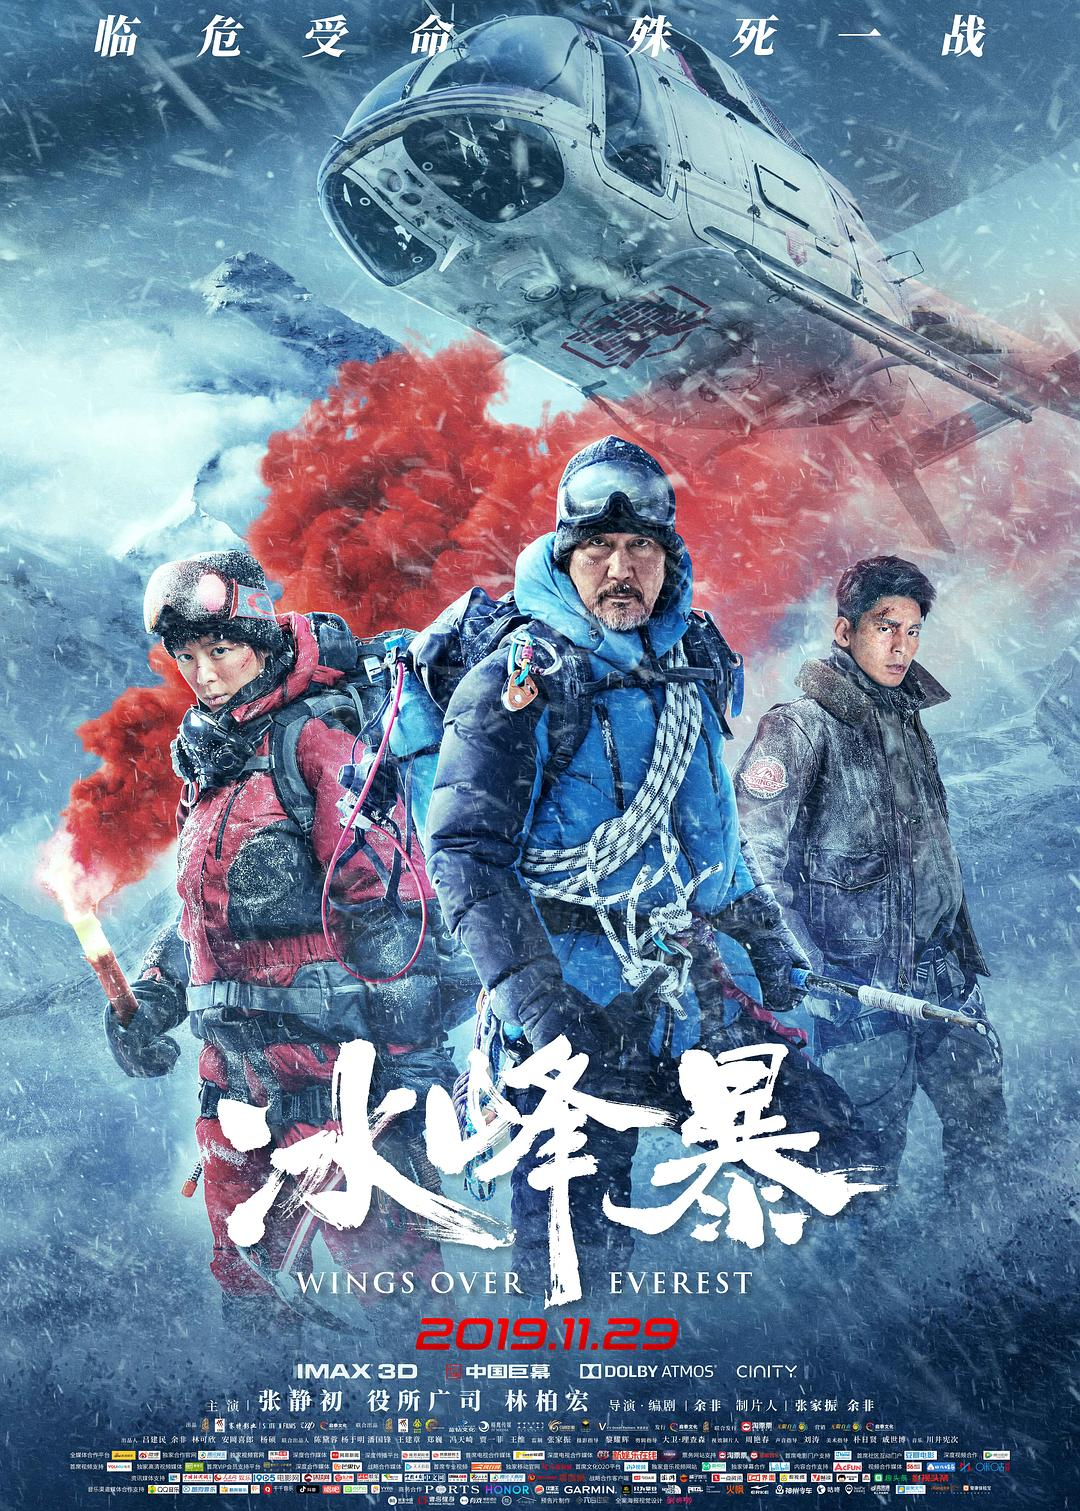 Wings Over Everest (2019) Hindi Dubbed 720p WEB-DL ESubs Free Download